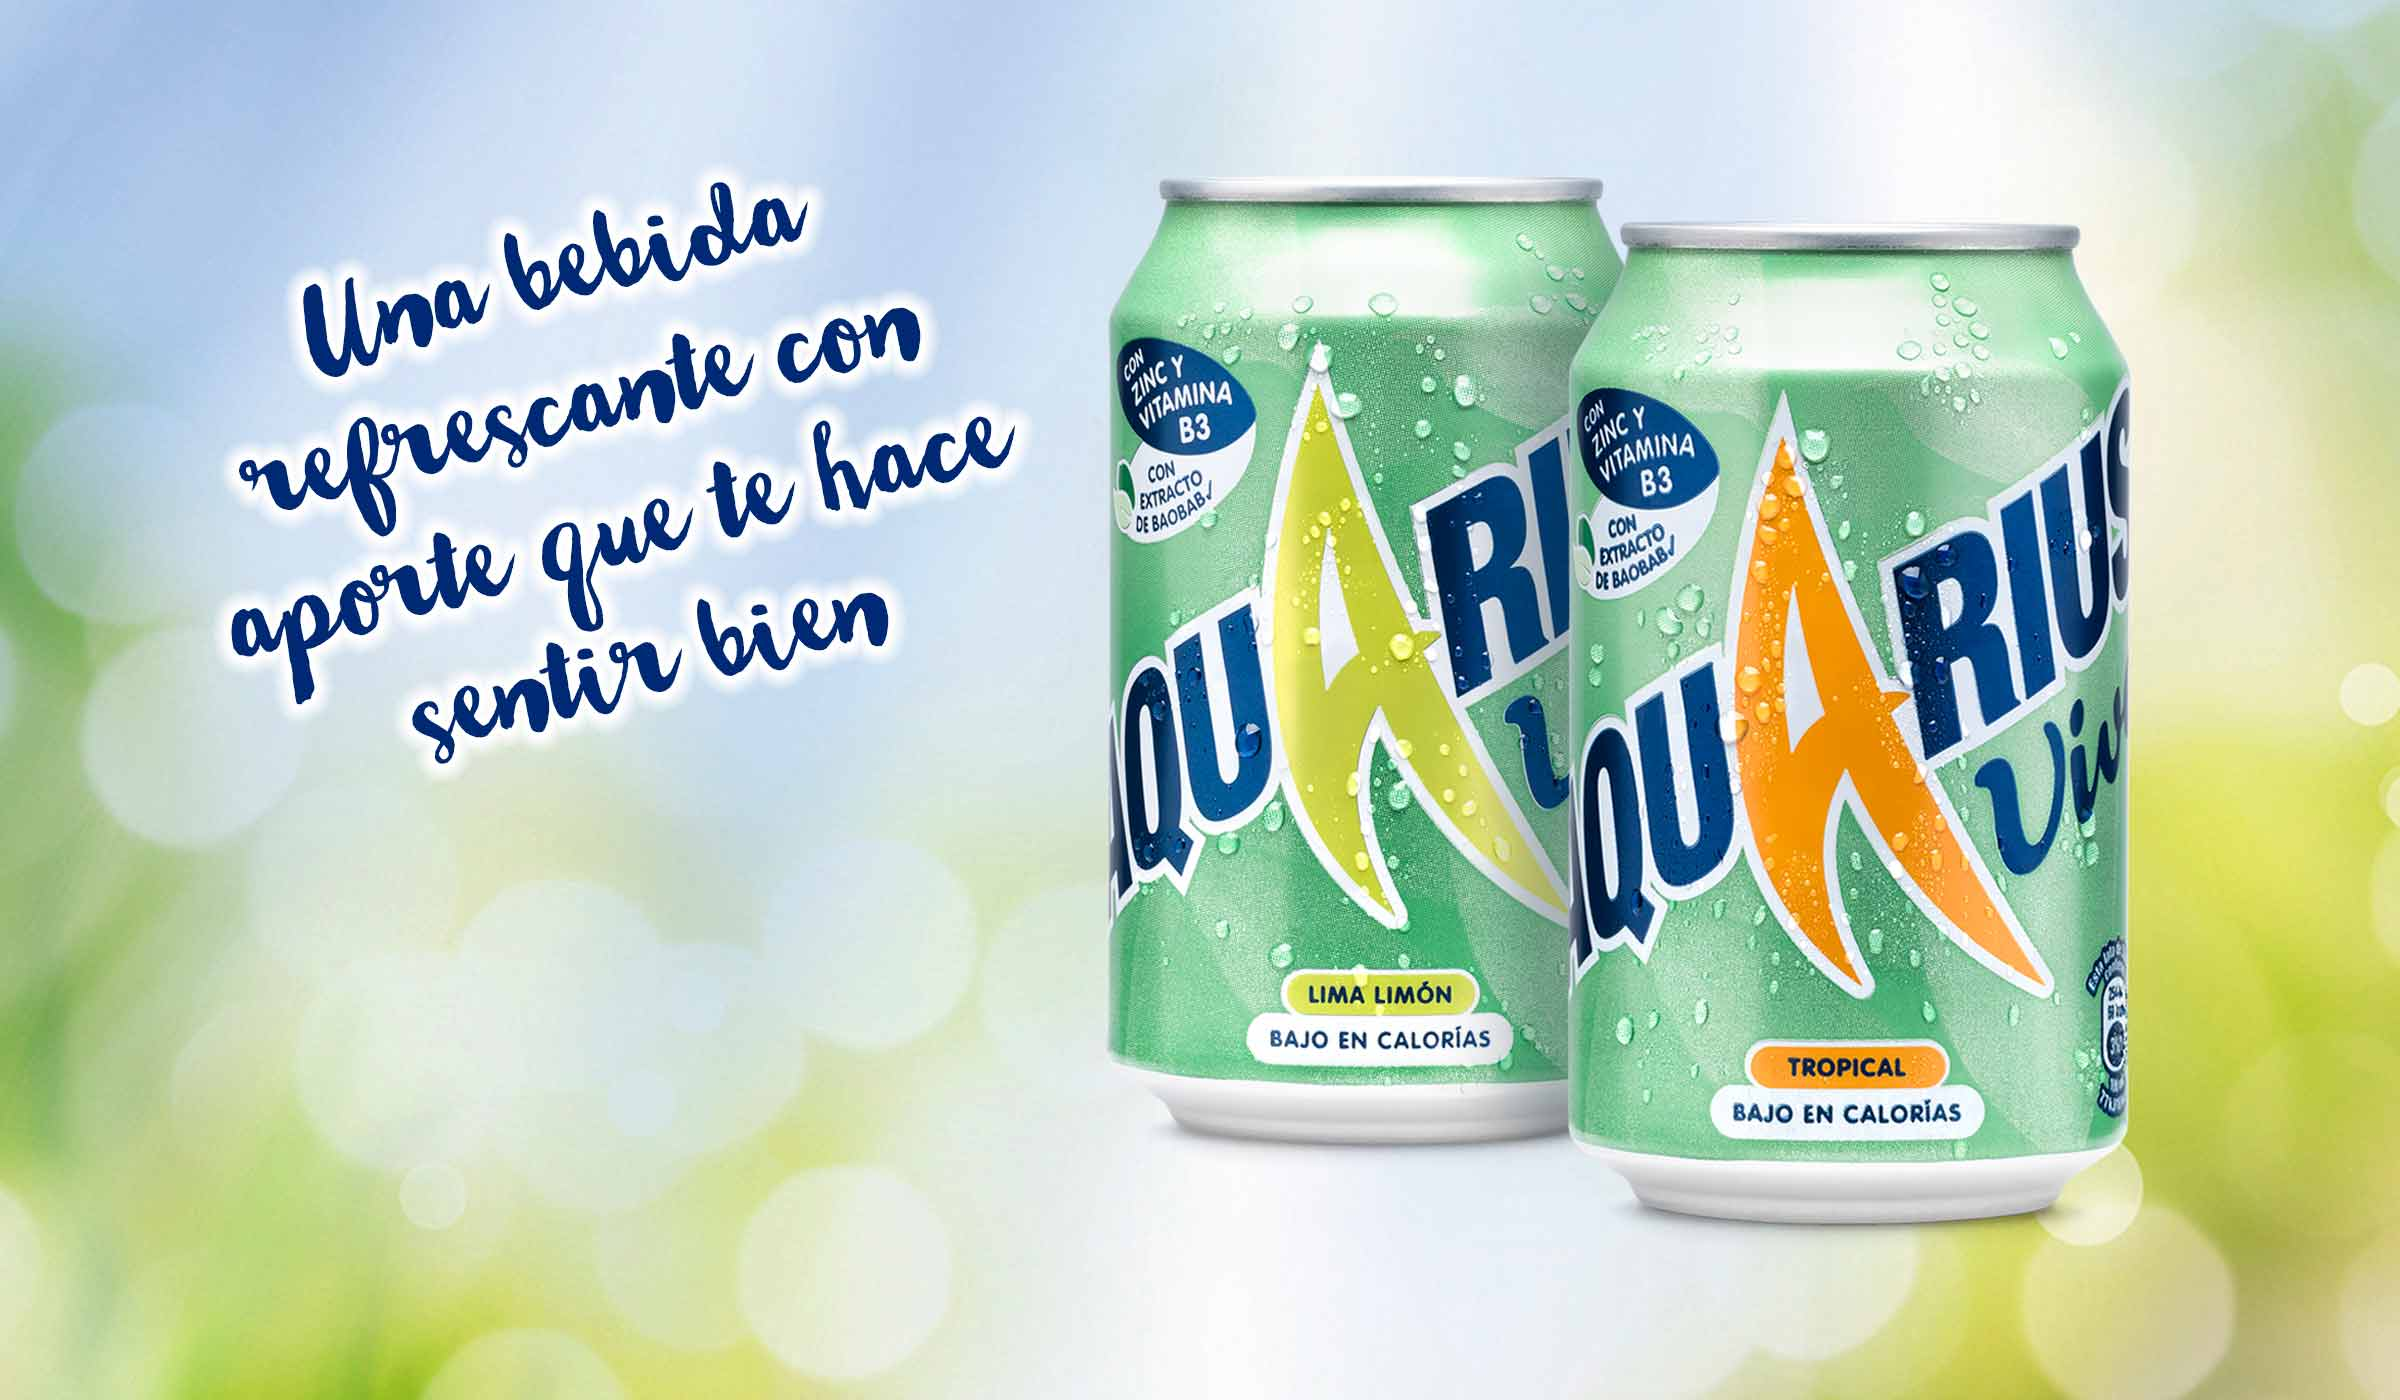 This image shows two Aquarius Vive cans, one in flavour LIMA LIMÓN and one in flavour TROPICAL. The cans are green featuring a Baobab leaf background, and are covered in water droplets. The background is an abstract blue and green image.